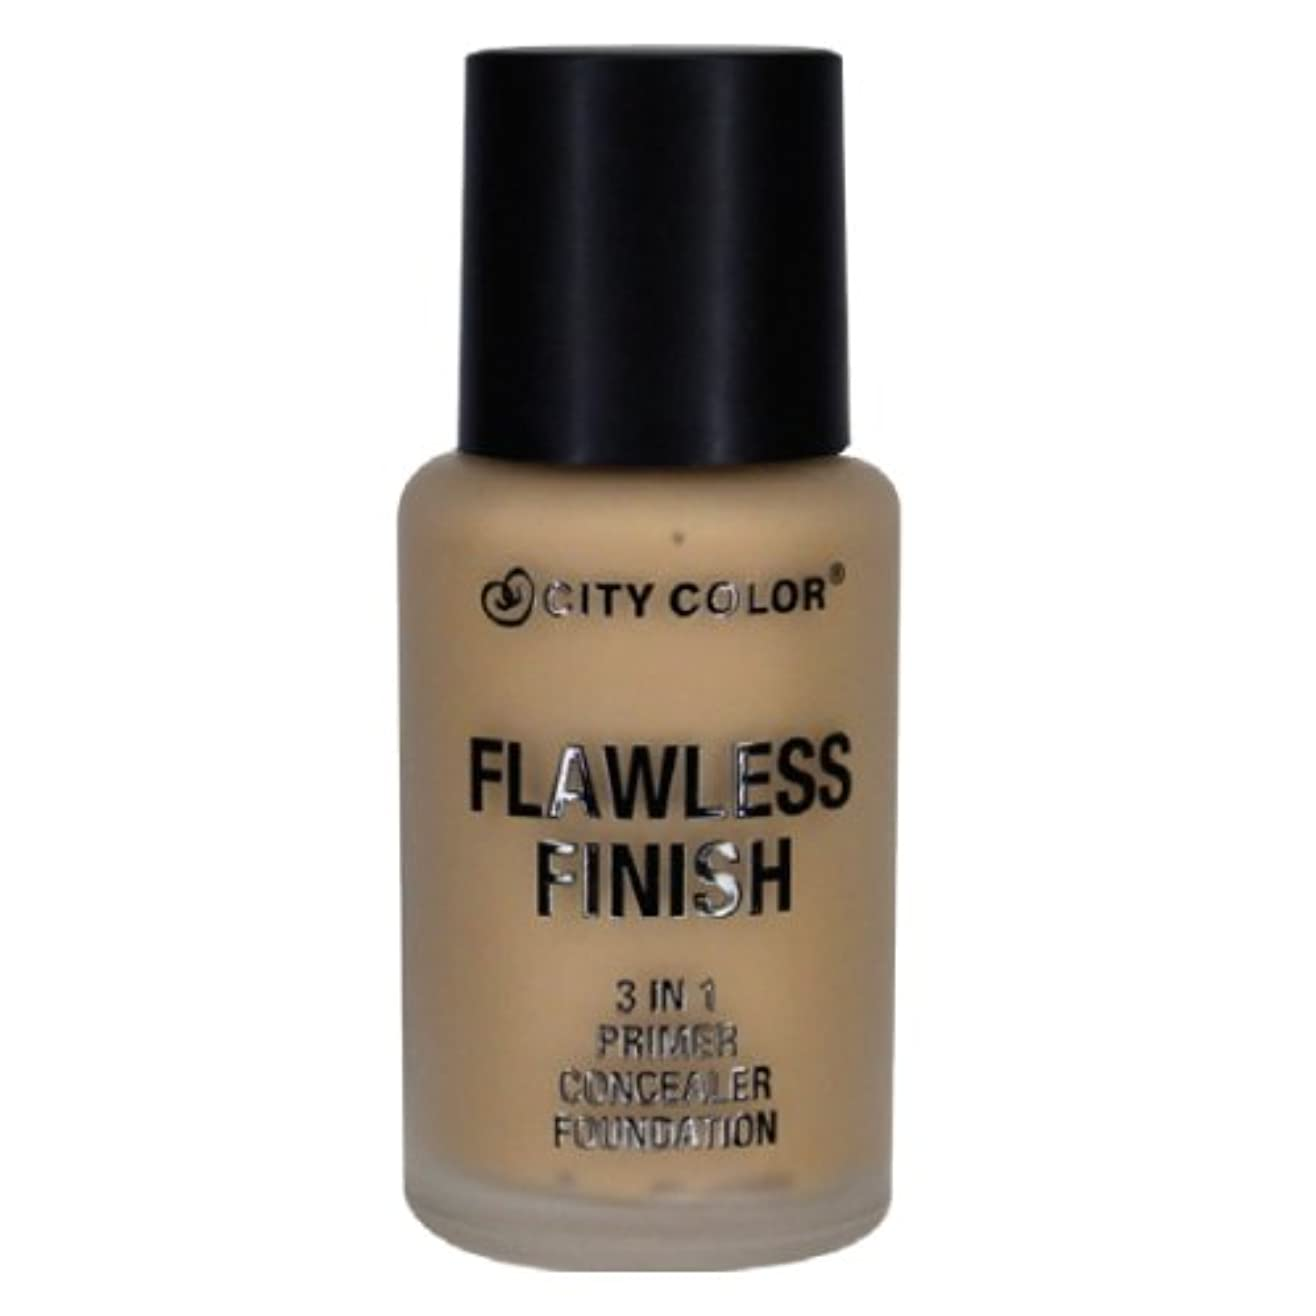 刈るミントスナップCITY COLOR Flawless Finish 3 In 1 Primer, Concealer Foundation - Medium (並行輸入品)